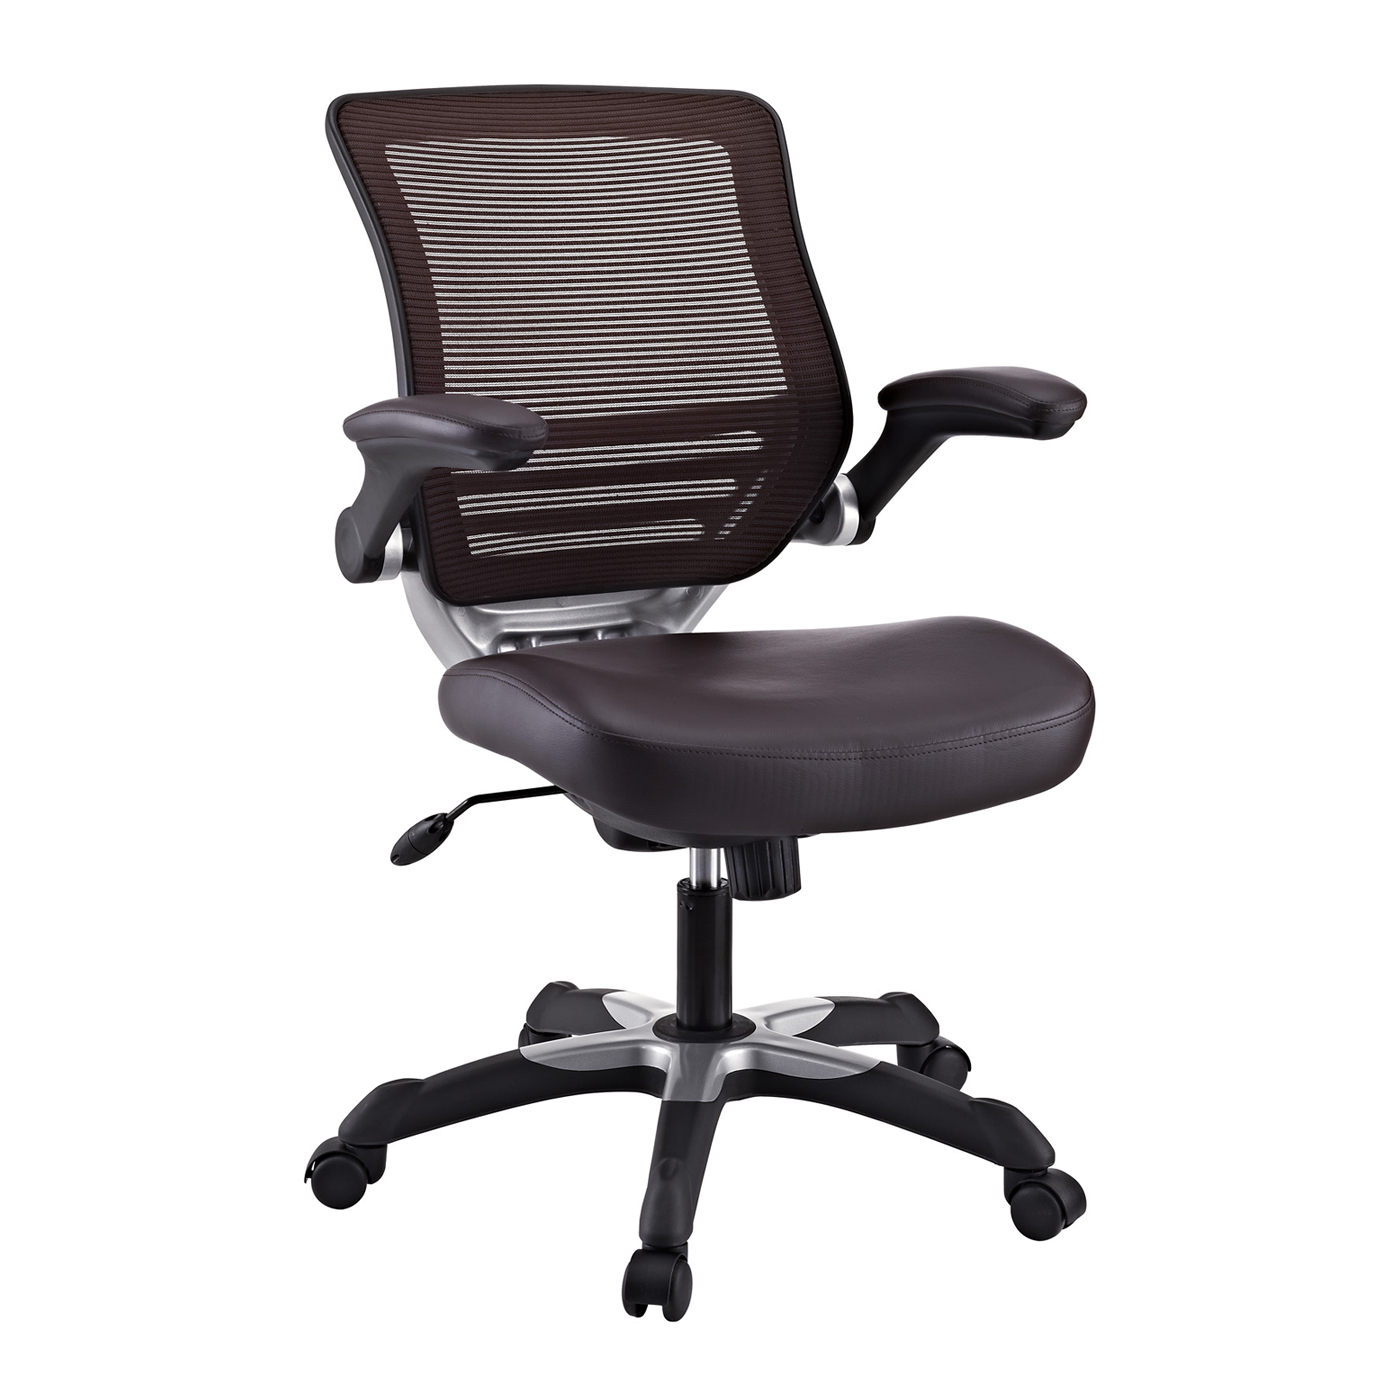 Ergonomic Computer Chair Adjustable Ergonomic Office Computer Desk Swivel Chair